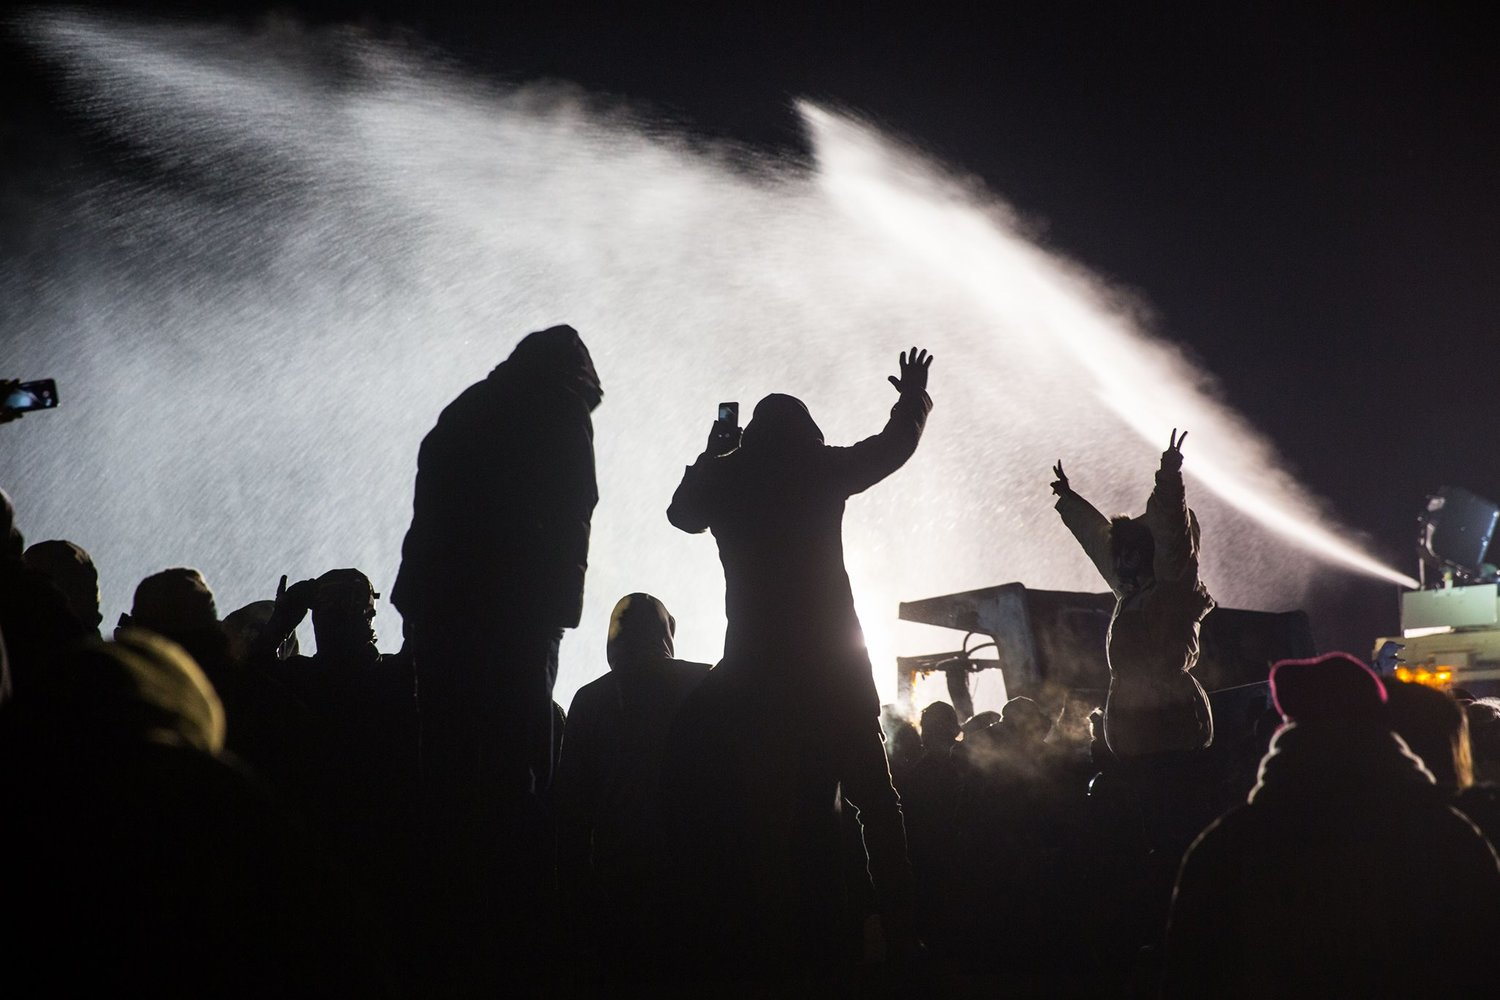 Water Cannons Fired at Water Protectors in Freezing Temperatures Injure Hundreds